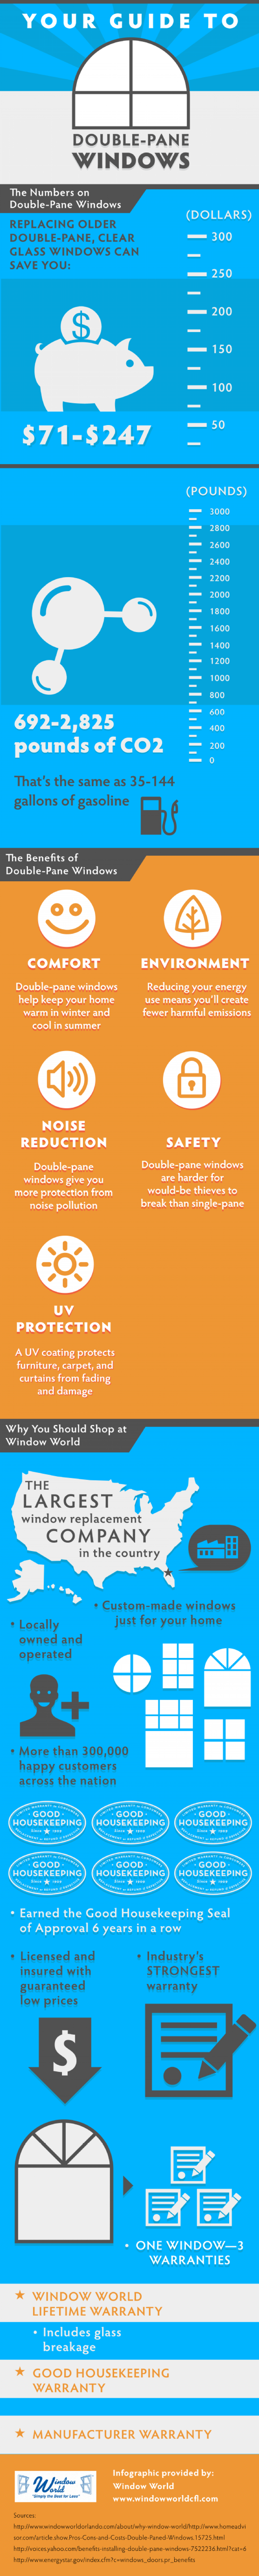 Your Guide to Double-Pane Windows  Infographic